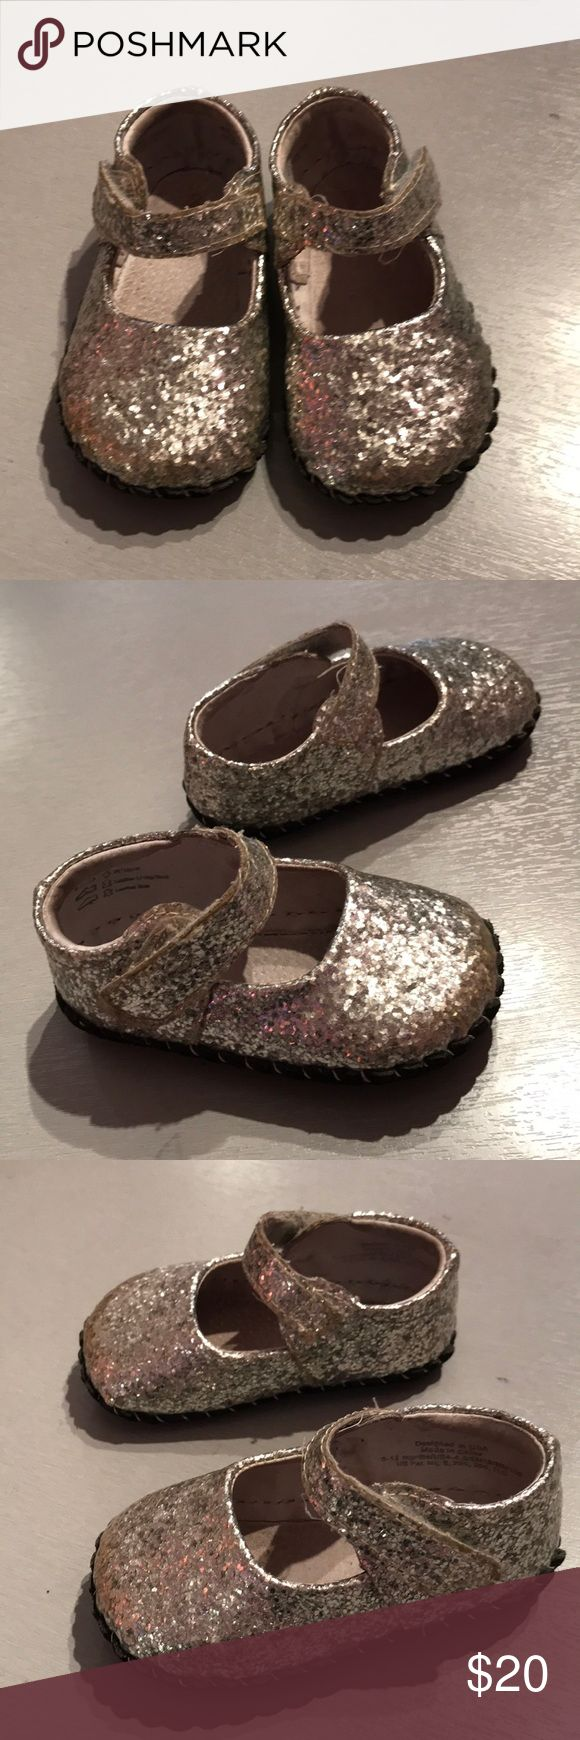 Pediped 6-12m baby shoes metallic Pediped 6-12m baby shoes metallic gently used clean condition. Consigned to my boutique. No trades pediped Shoes Baby & Walker